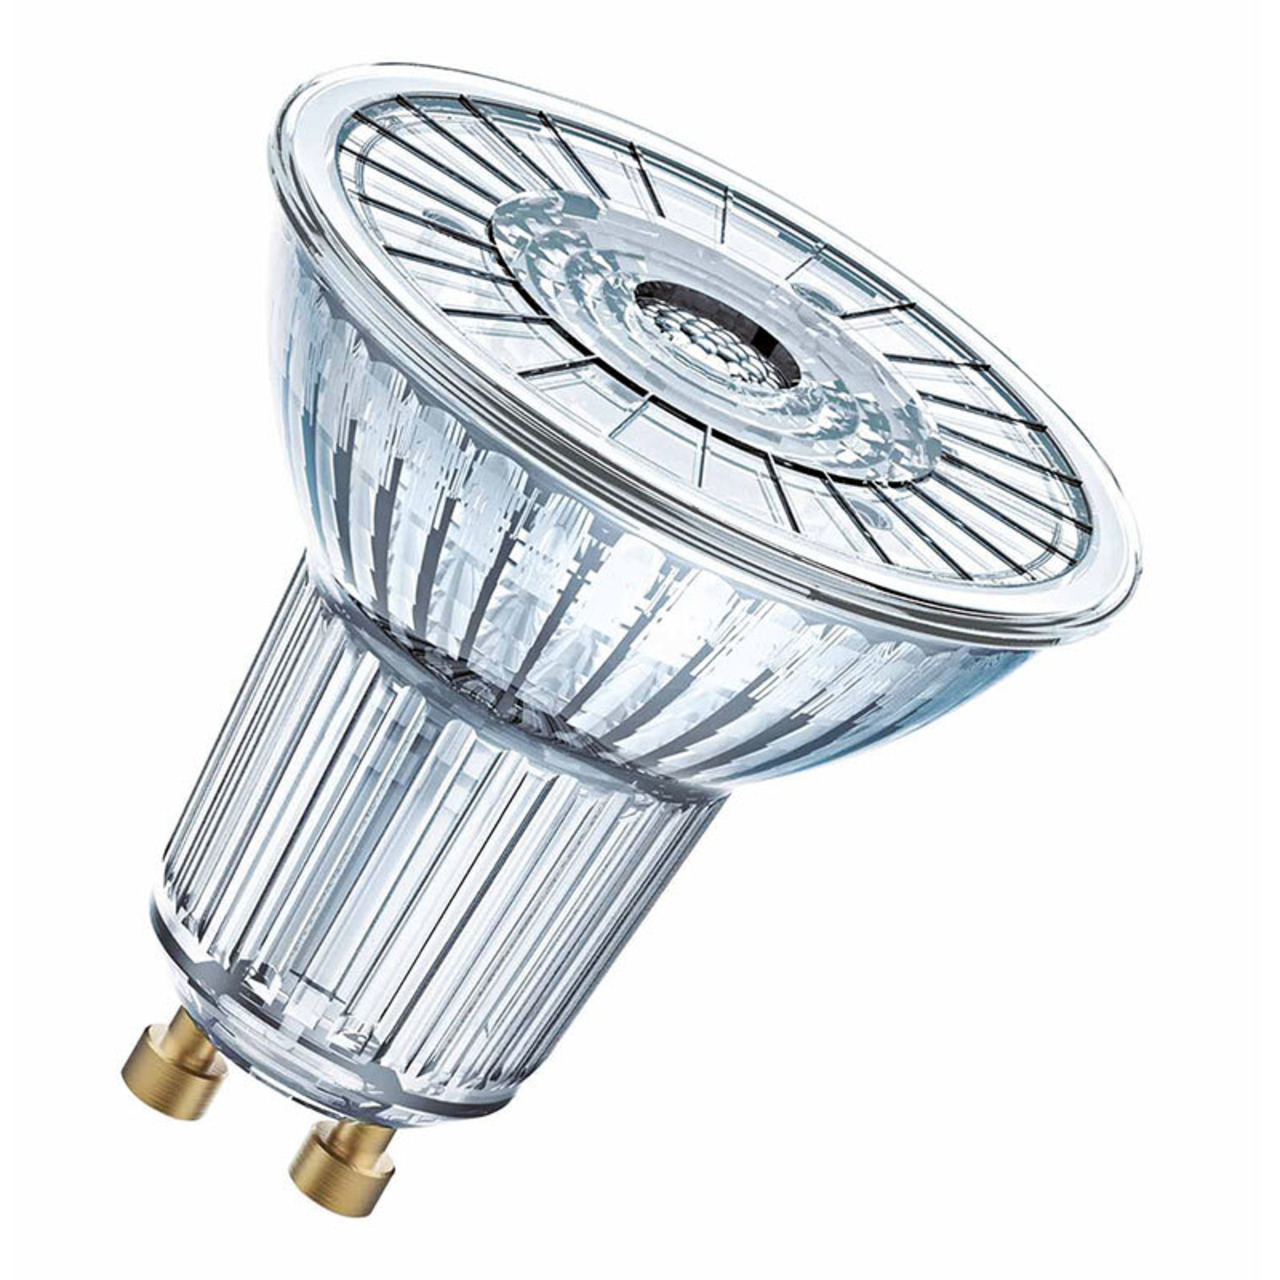 OSRAM LED SUPERSTAR 8-3-W-GU10-LED-Lampe- warmweiss- dimmbar- mit Glas-Reflektor